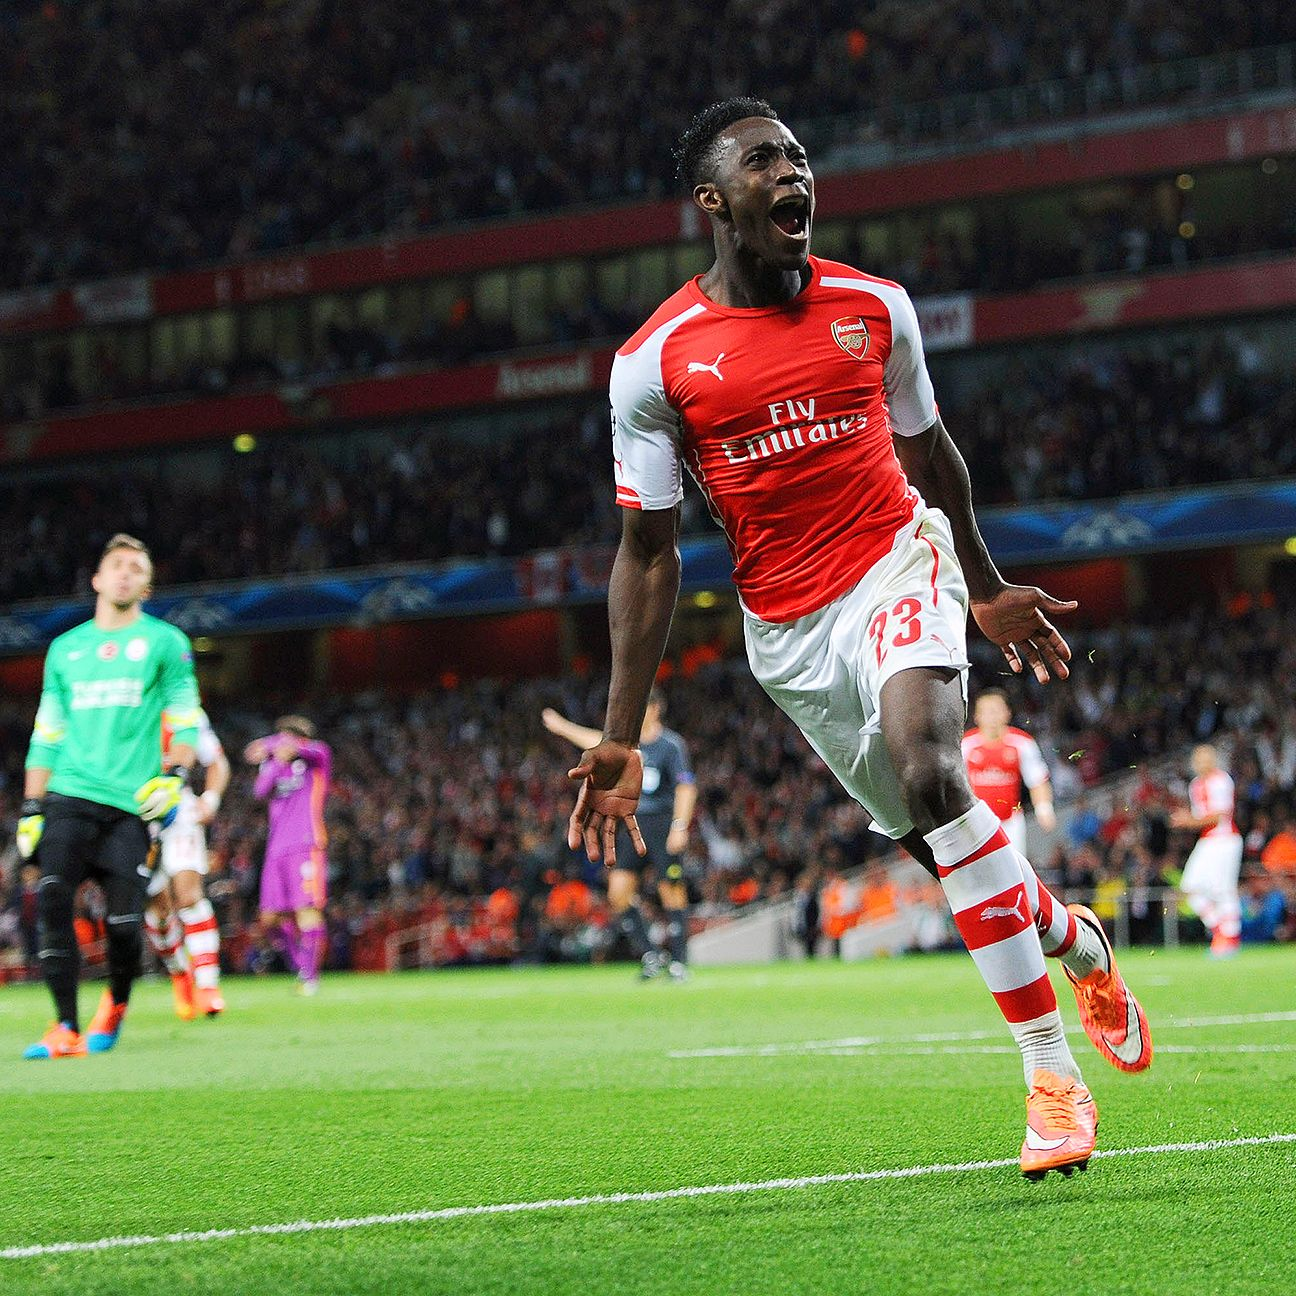 Danny Welbeck could well get the nod over Olivier Giroud to start up front for Arsenal.